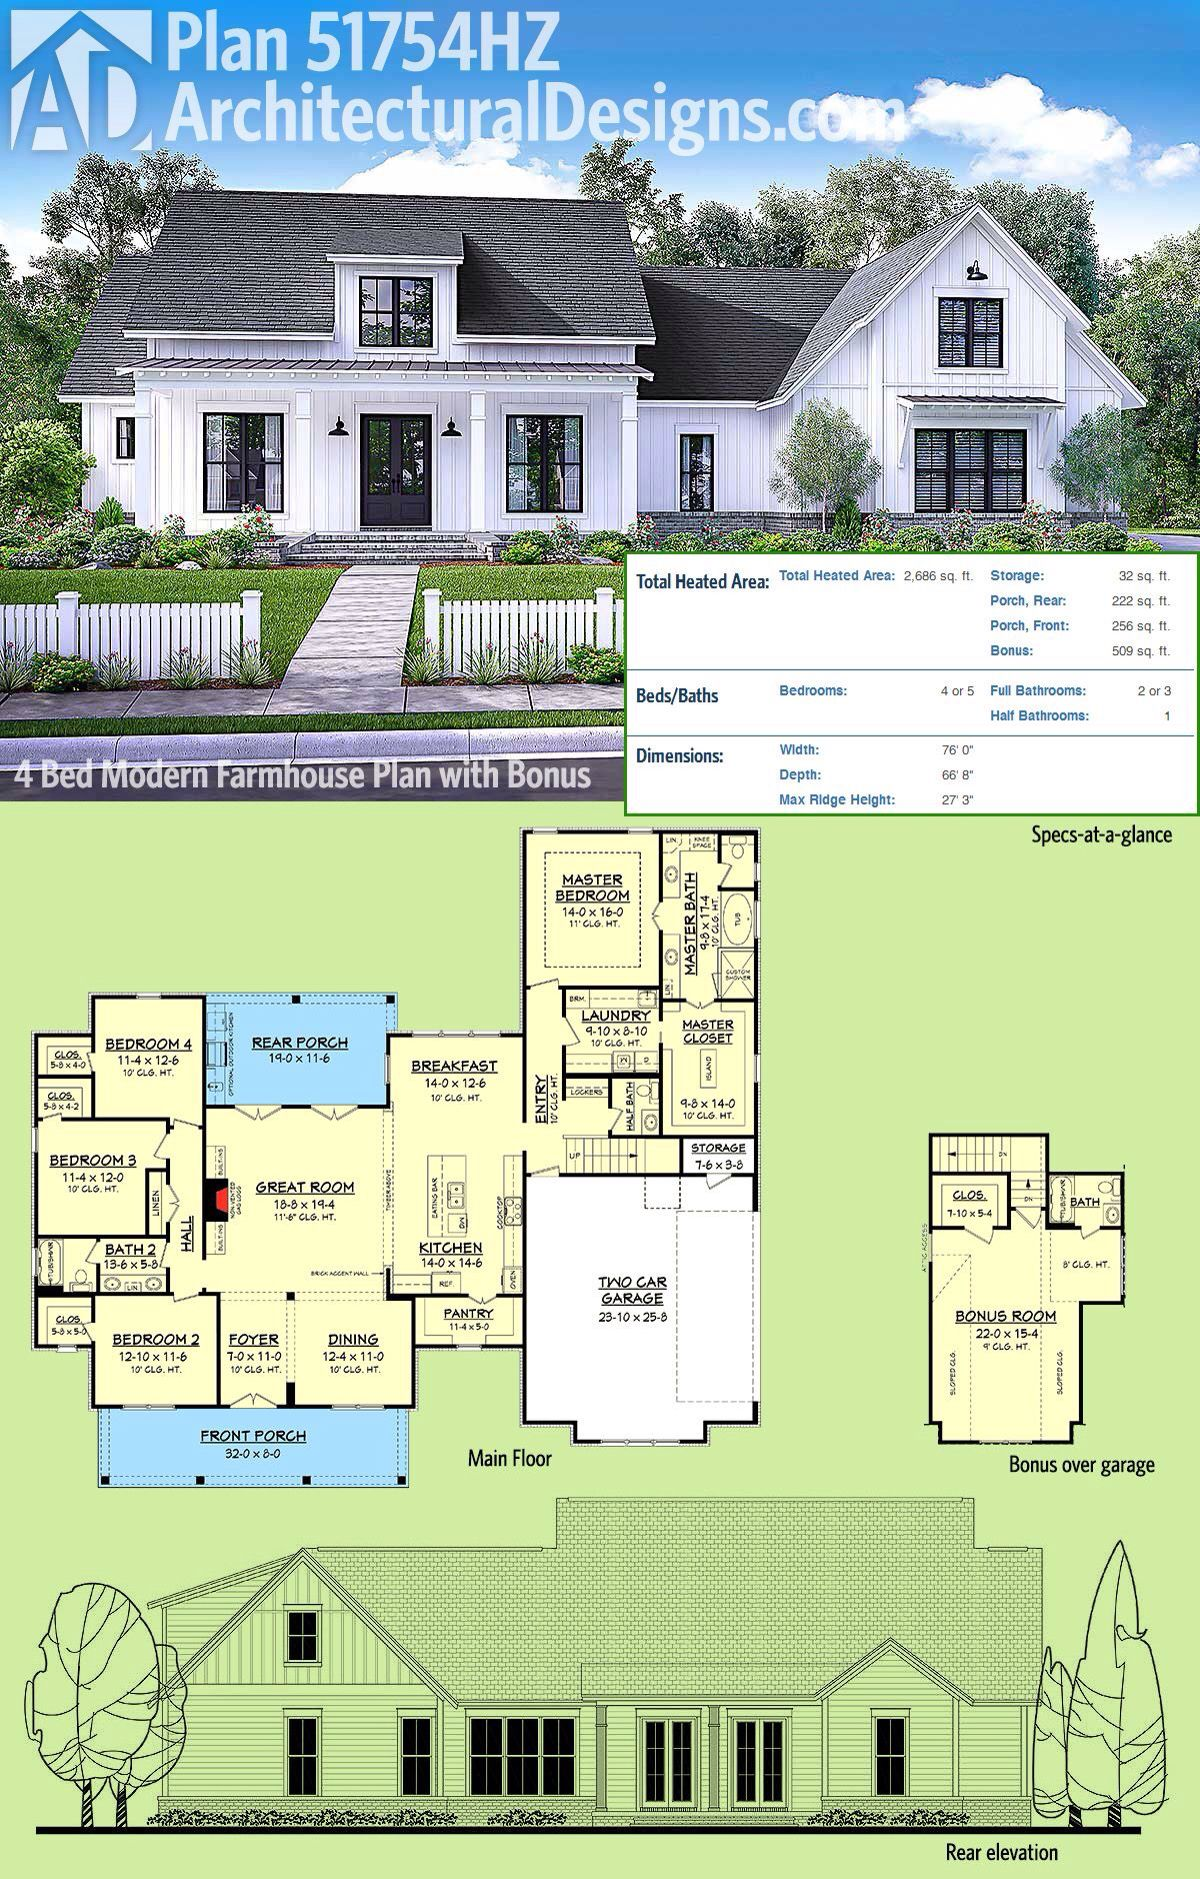 Ranch house plans Pin by Cathy Mathews